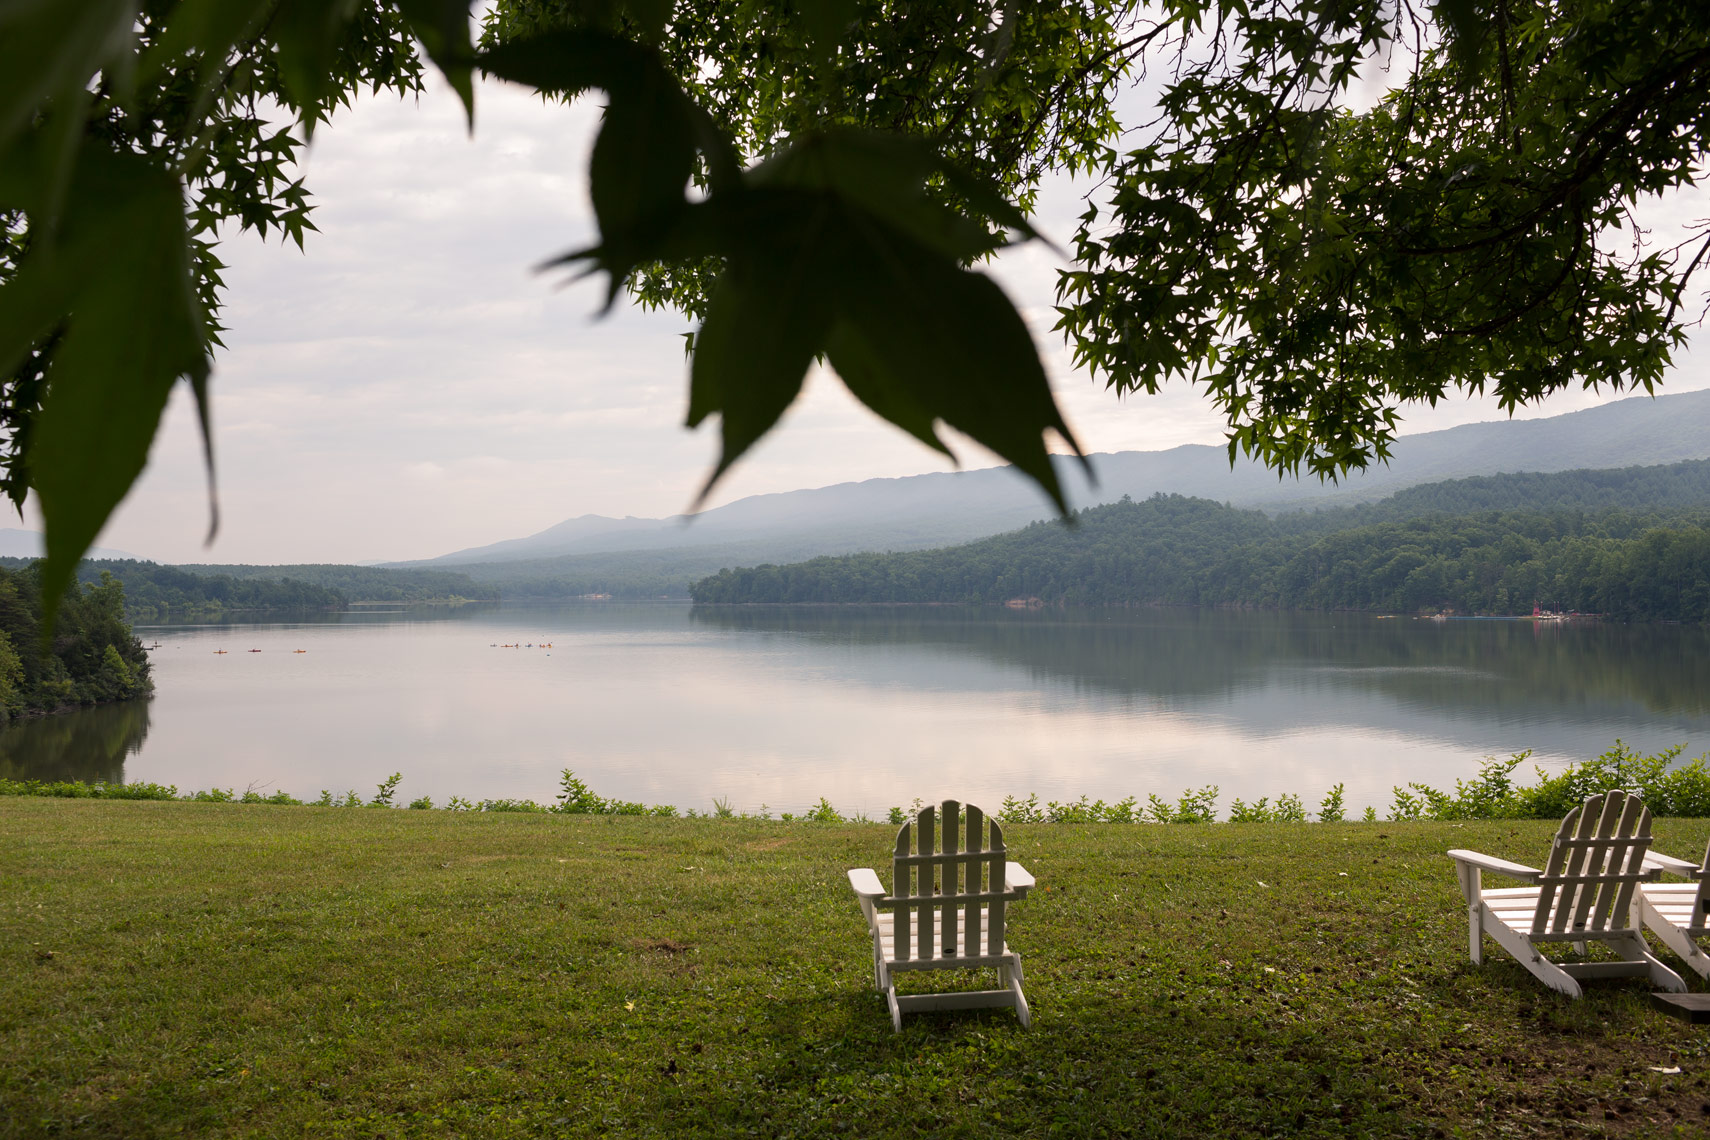 white adirondack chair on lake, washington dc photojournalism